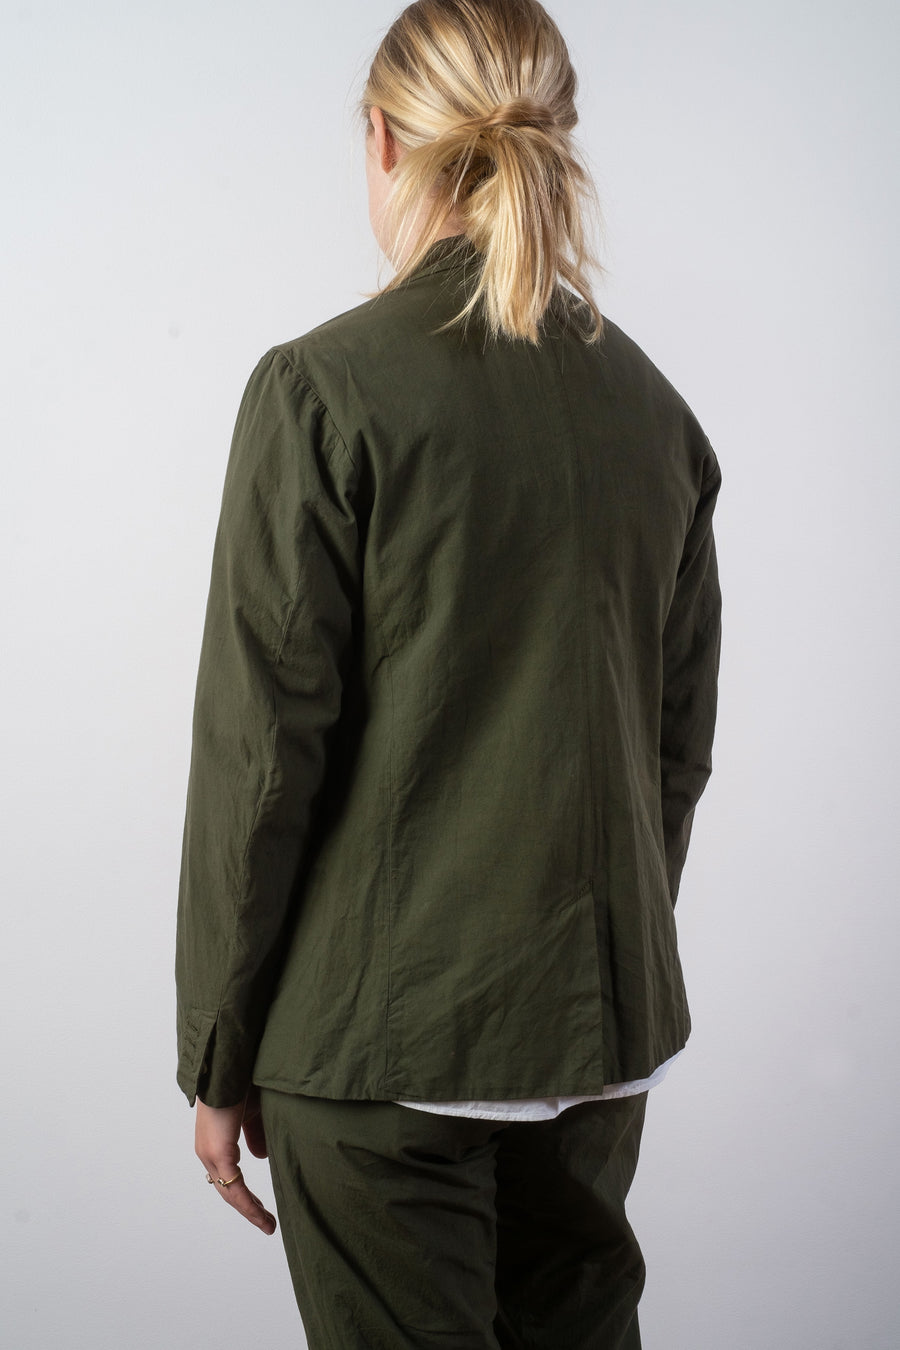 arts & science women's cotton tailored jacket in laurier green | noodle stories